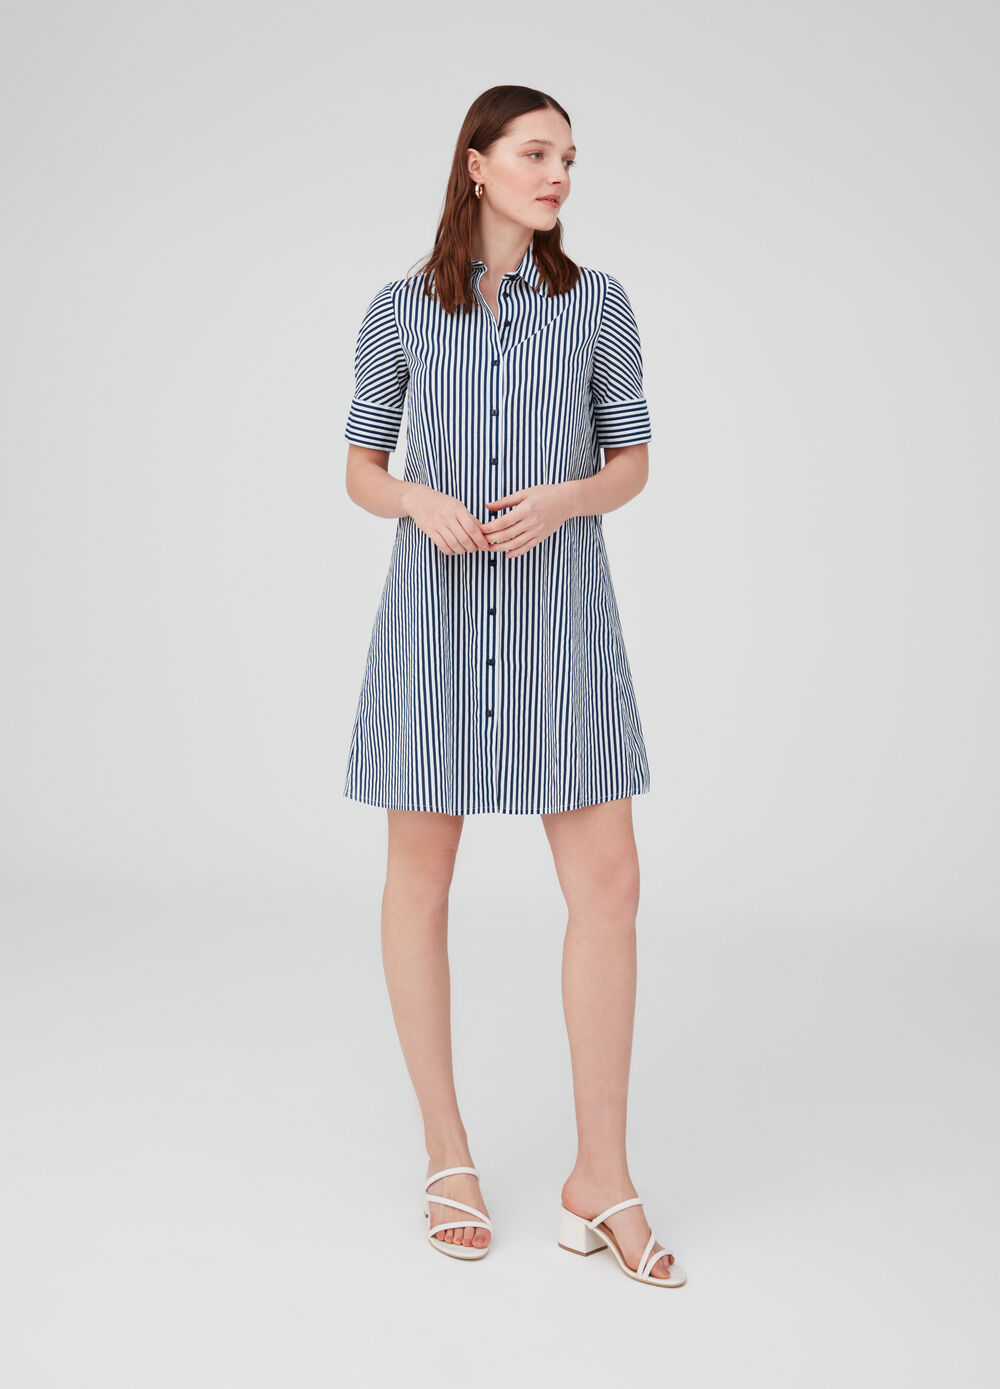 Dress with collar, short sleeves and stripes